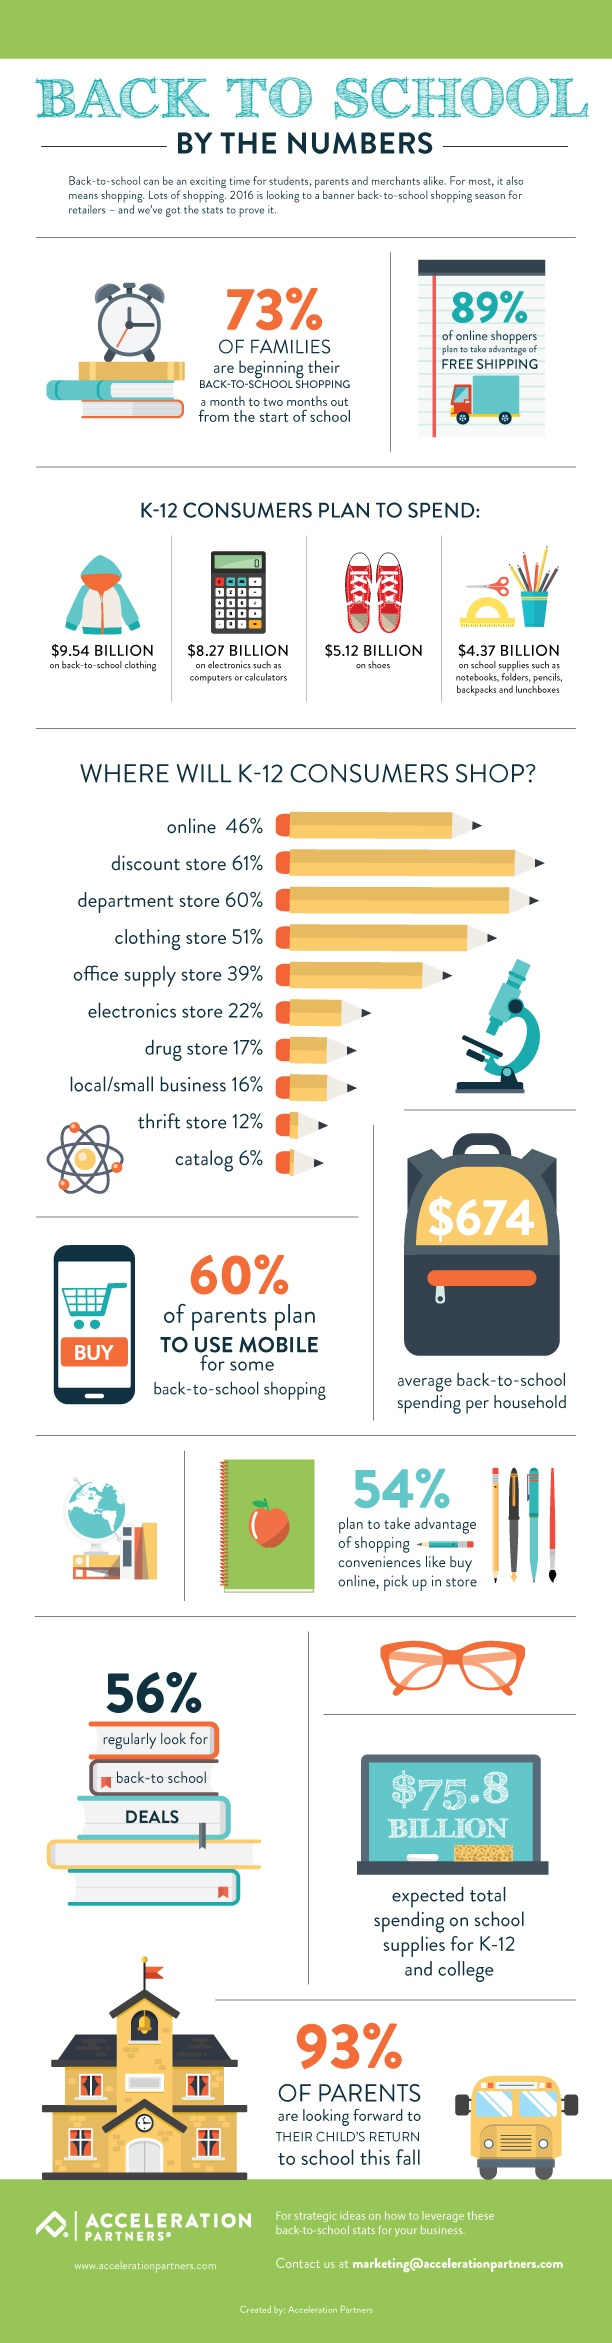 2016 Back to School By the Numbers Infographic